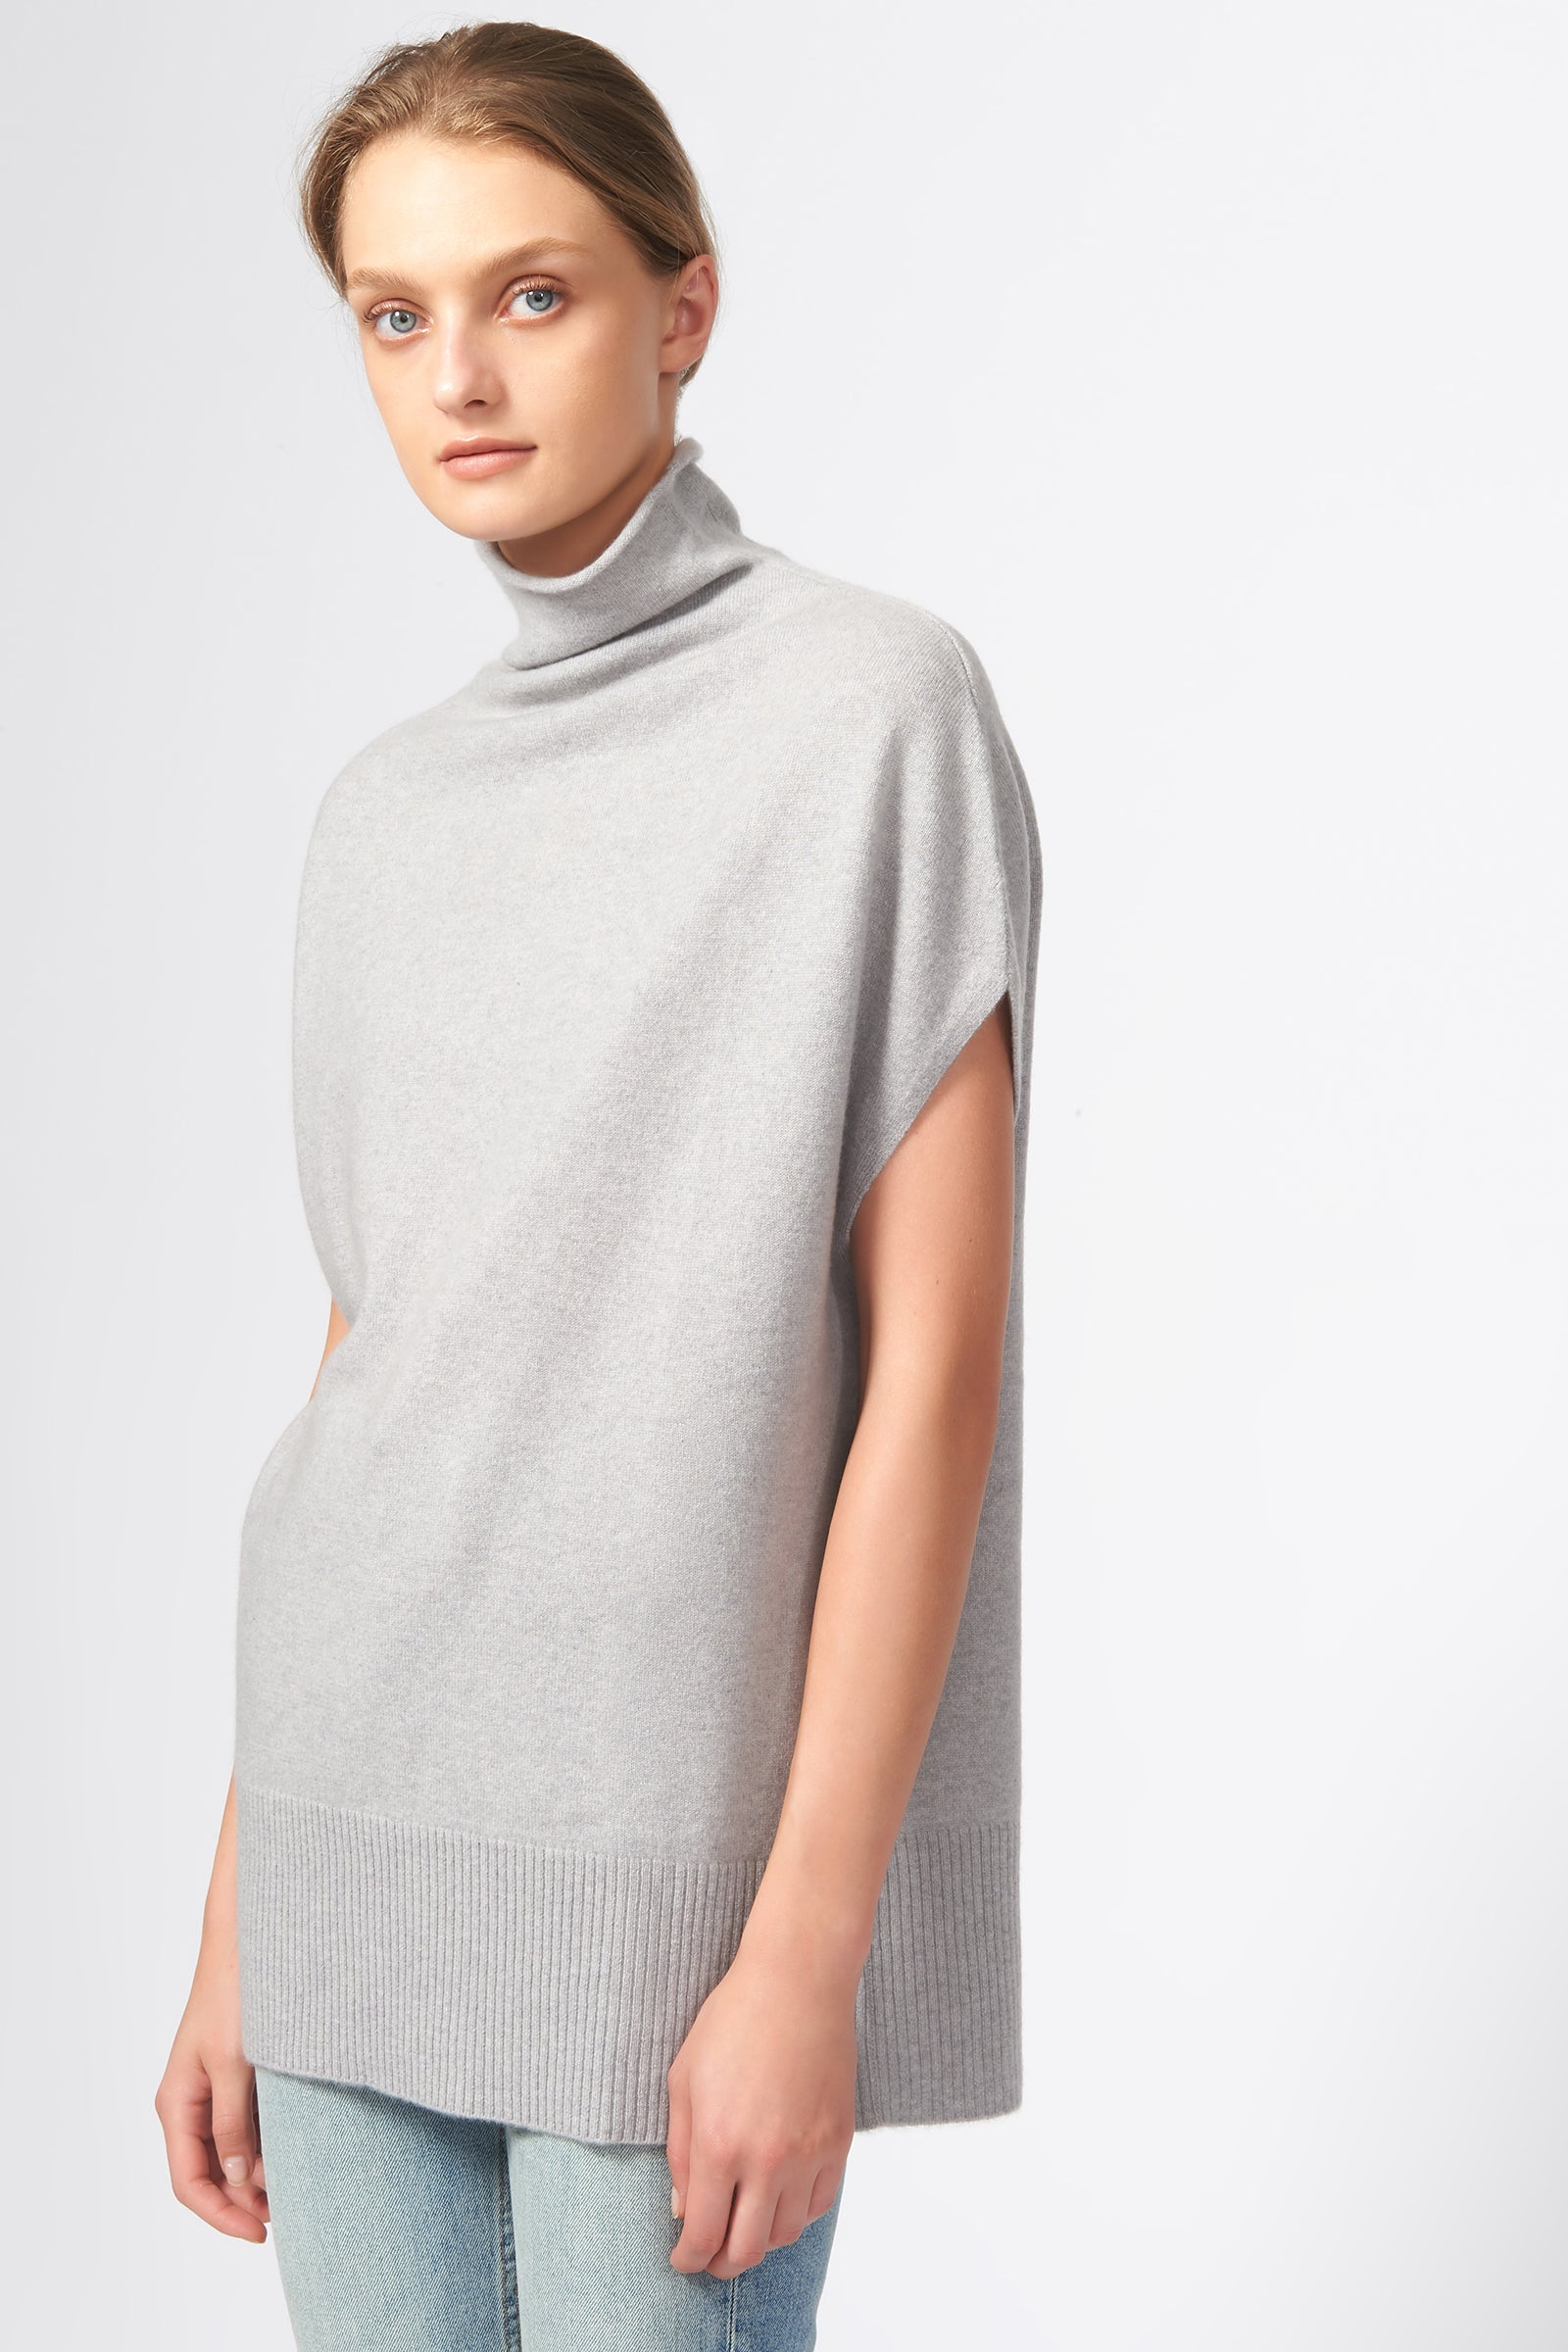 Kal Rieman Cashmere Funnelneck in Heather Grey on Model Front Side View